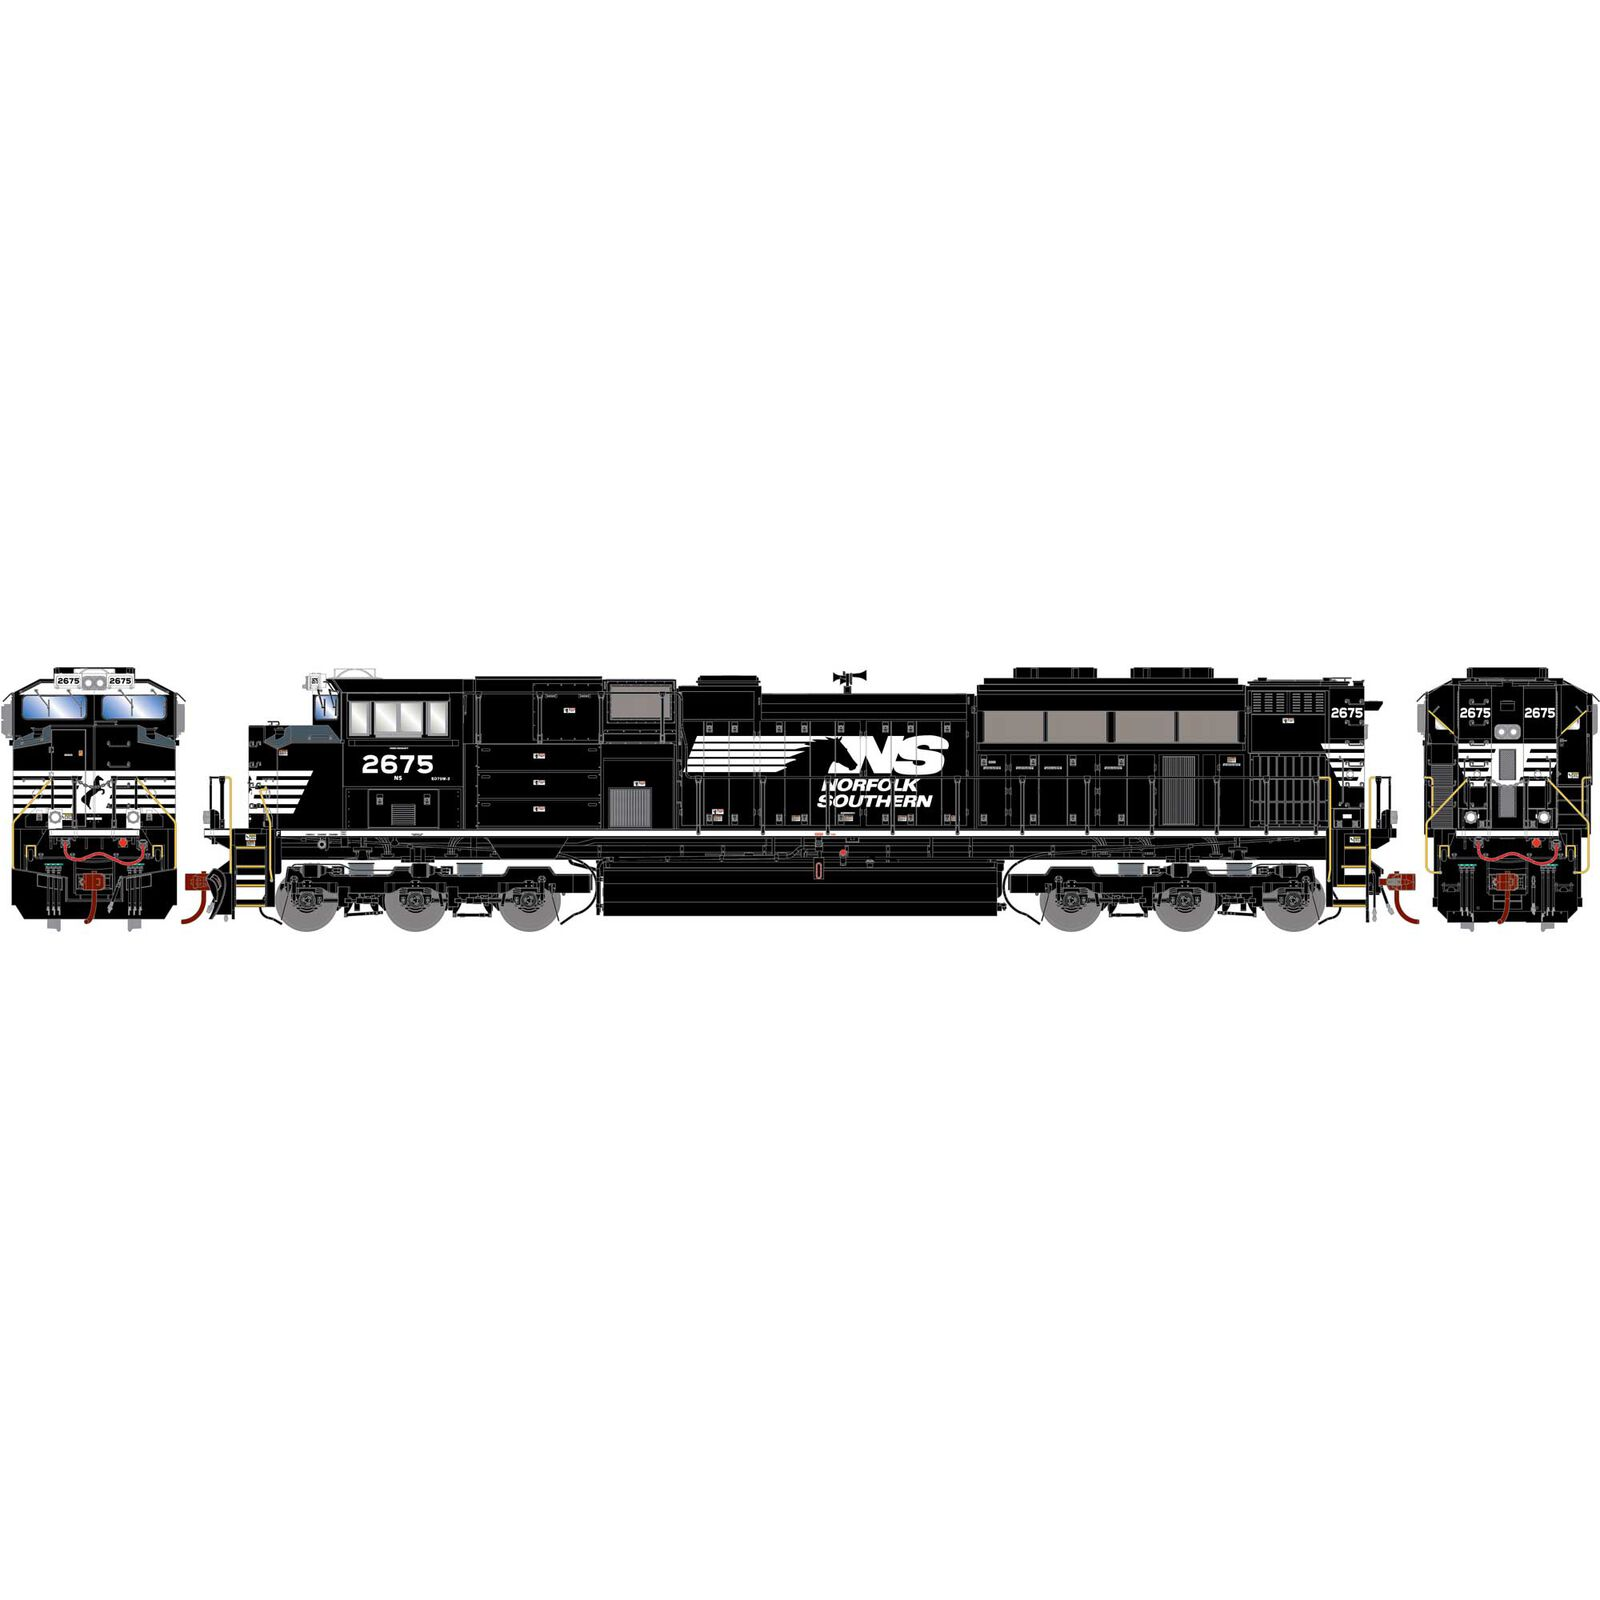 HO G2 SD70M-2 with DCC & Sound, NS #2675